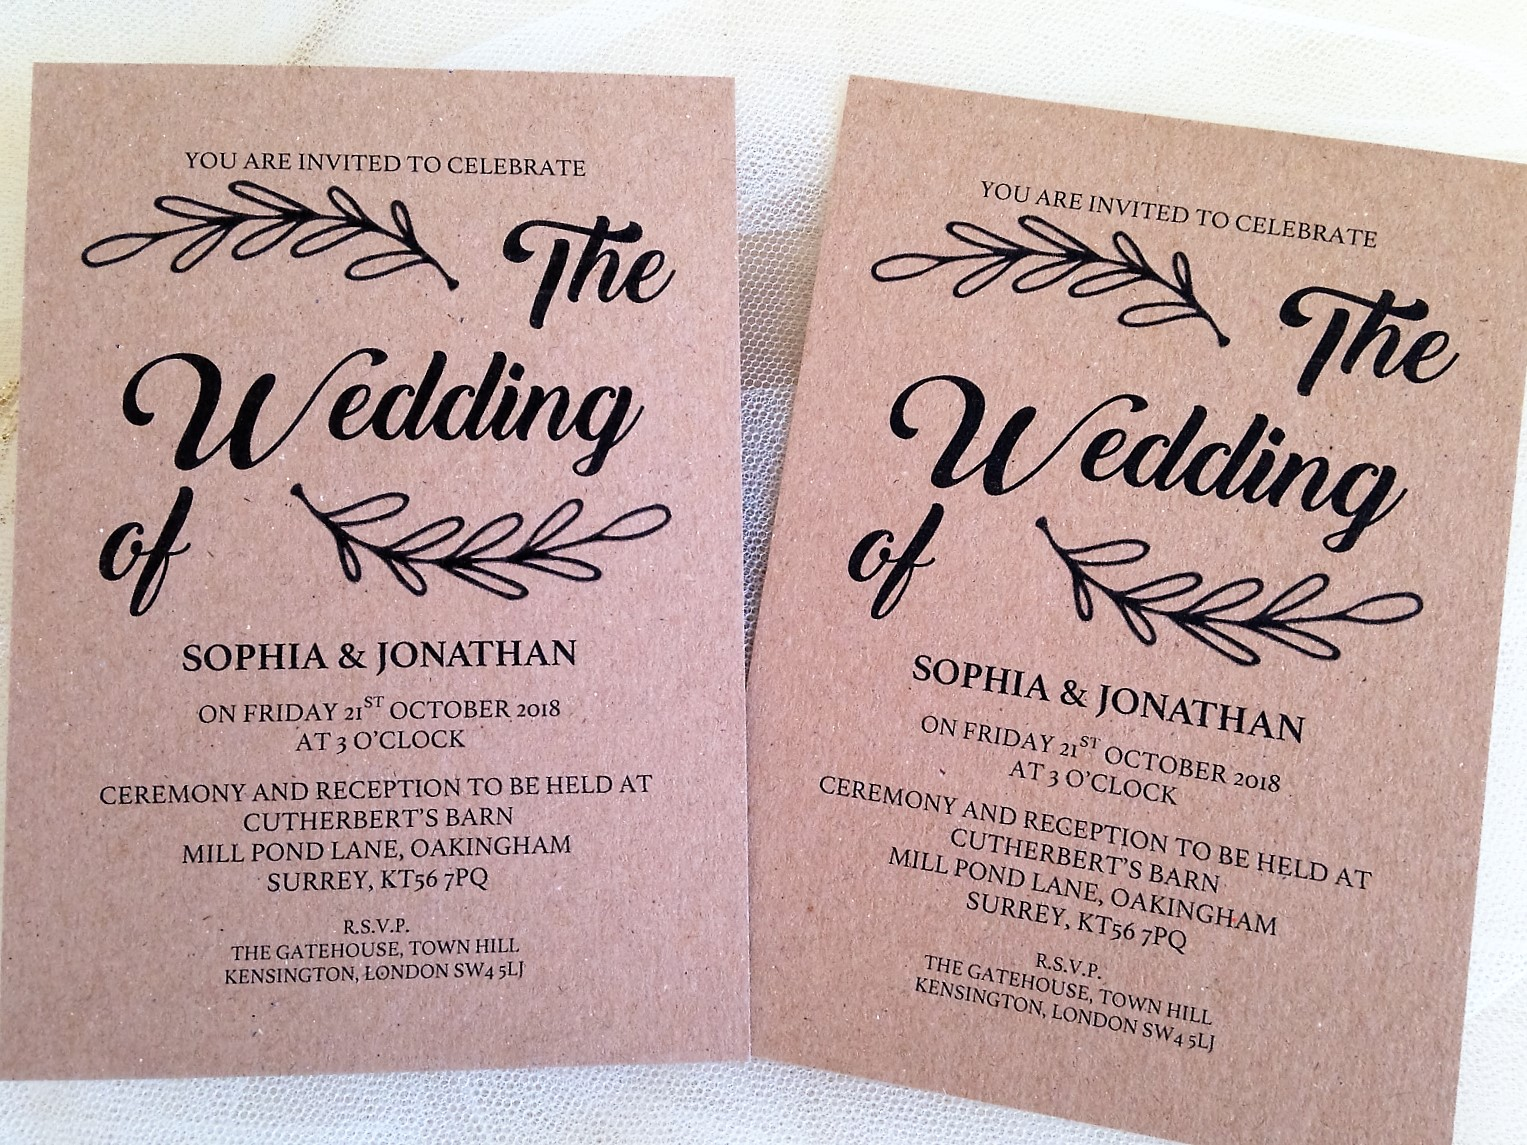 What To Include In A Wedding Invitation: Wreath Wedding Invitations